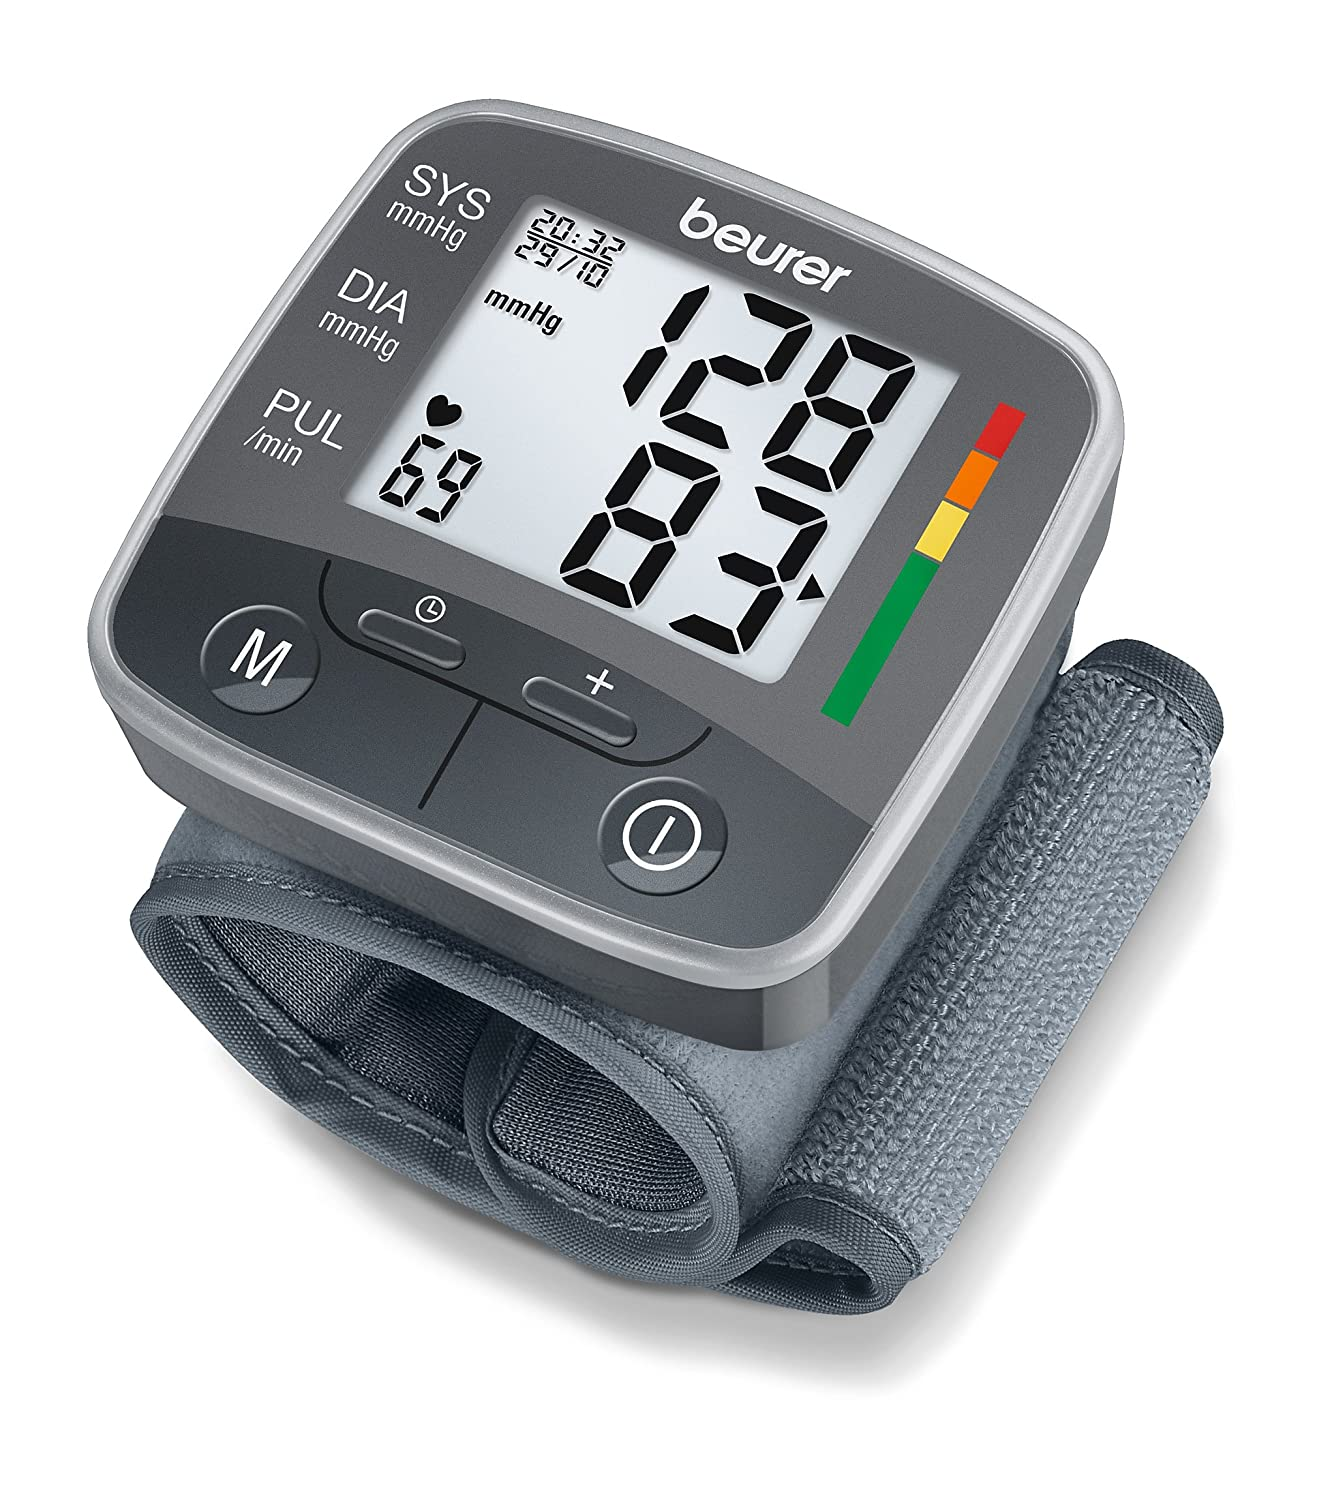 Amazon.com: BC32 Wrist Blood Pressure Monitor: Health ...